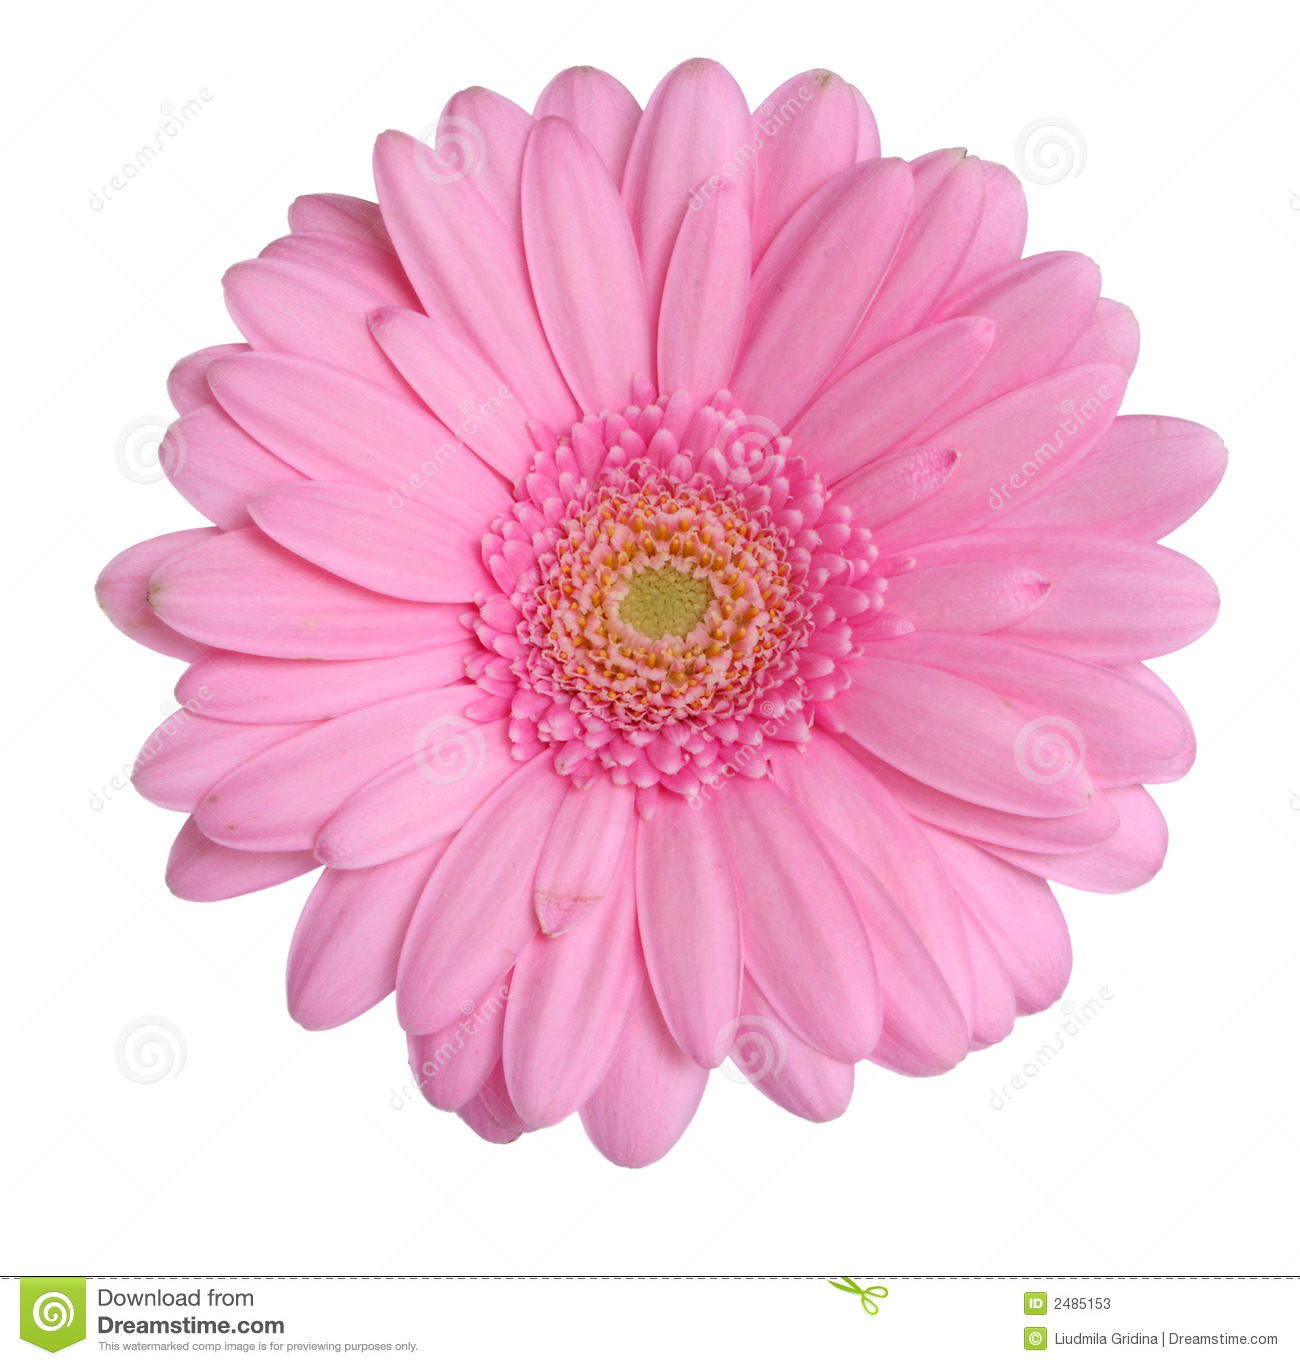 Pink Gerbera Daisy Clip Art - Floral delivery